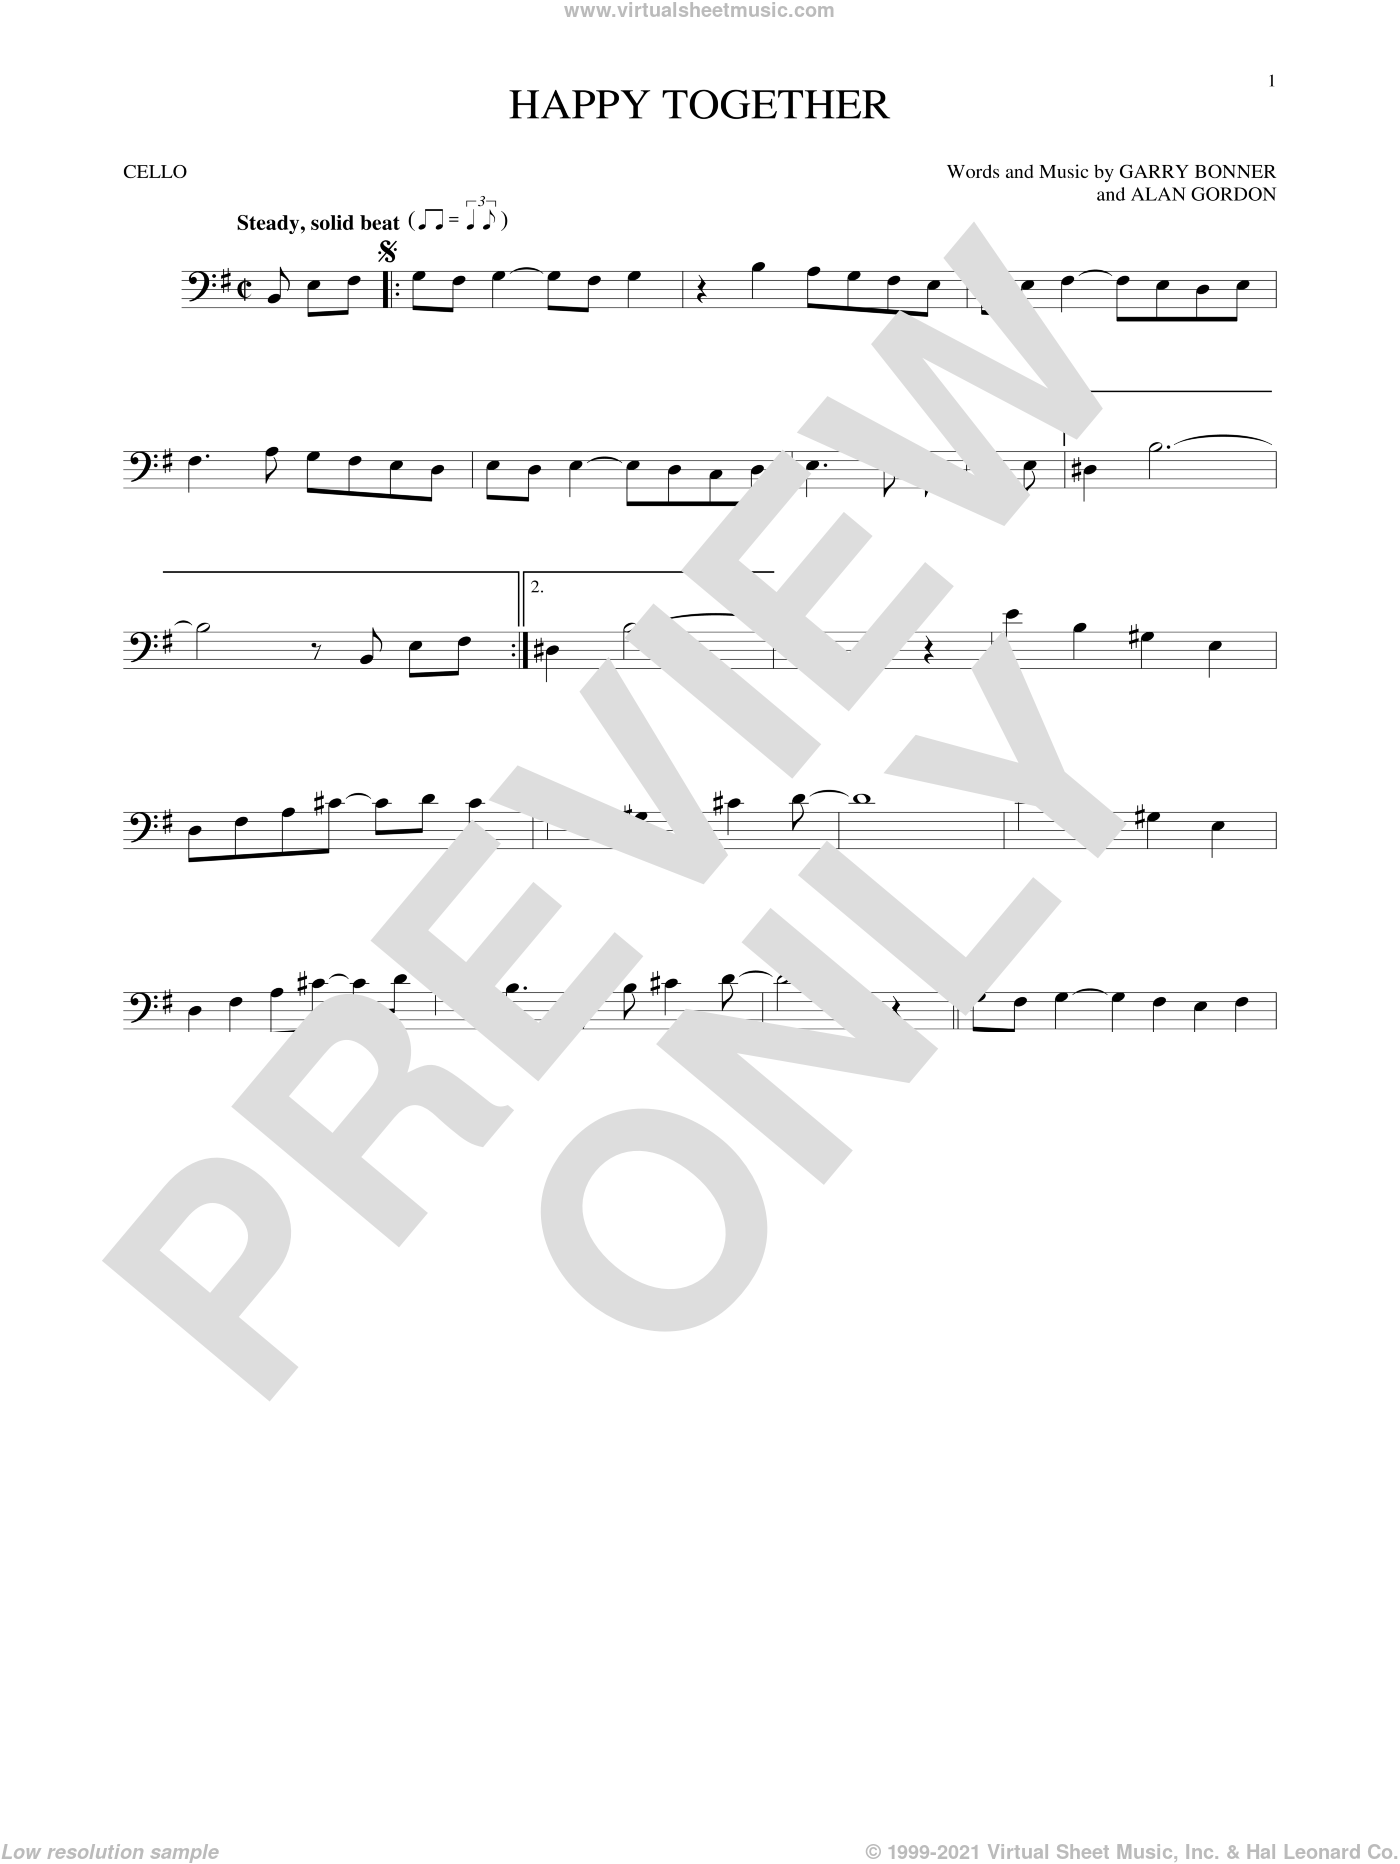 Happy Together sheet music for cello solo by Garry Bonner